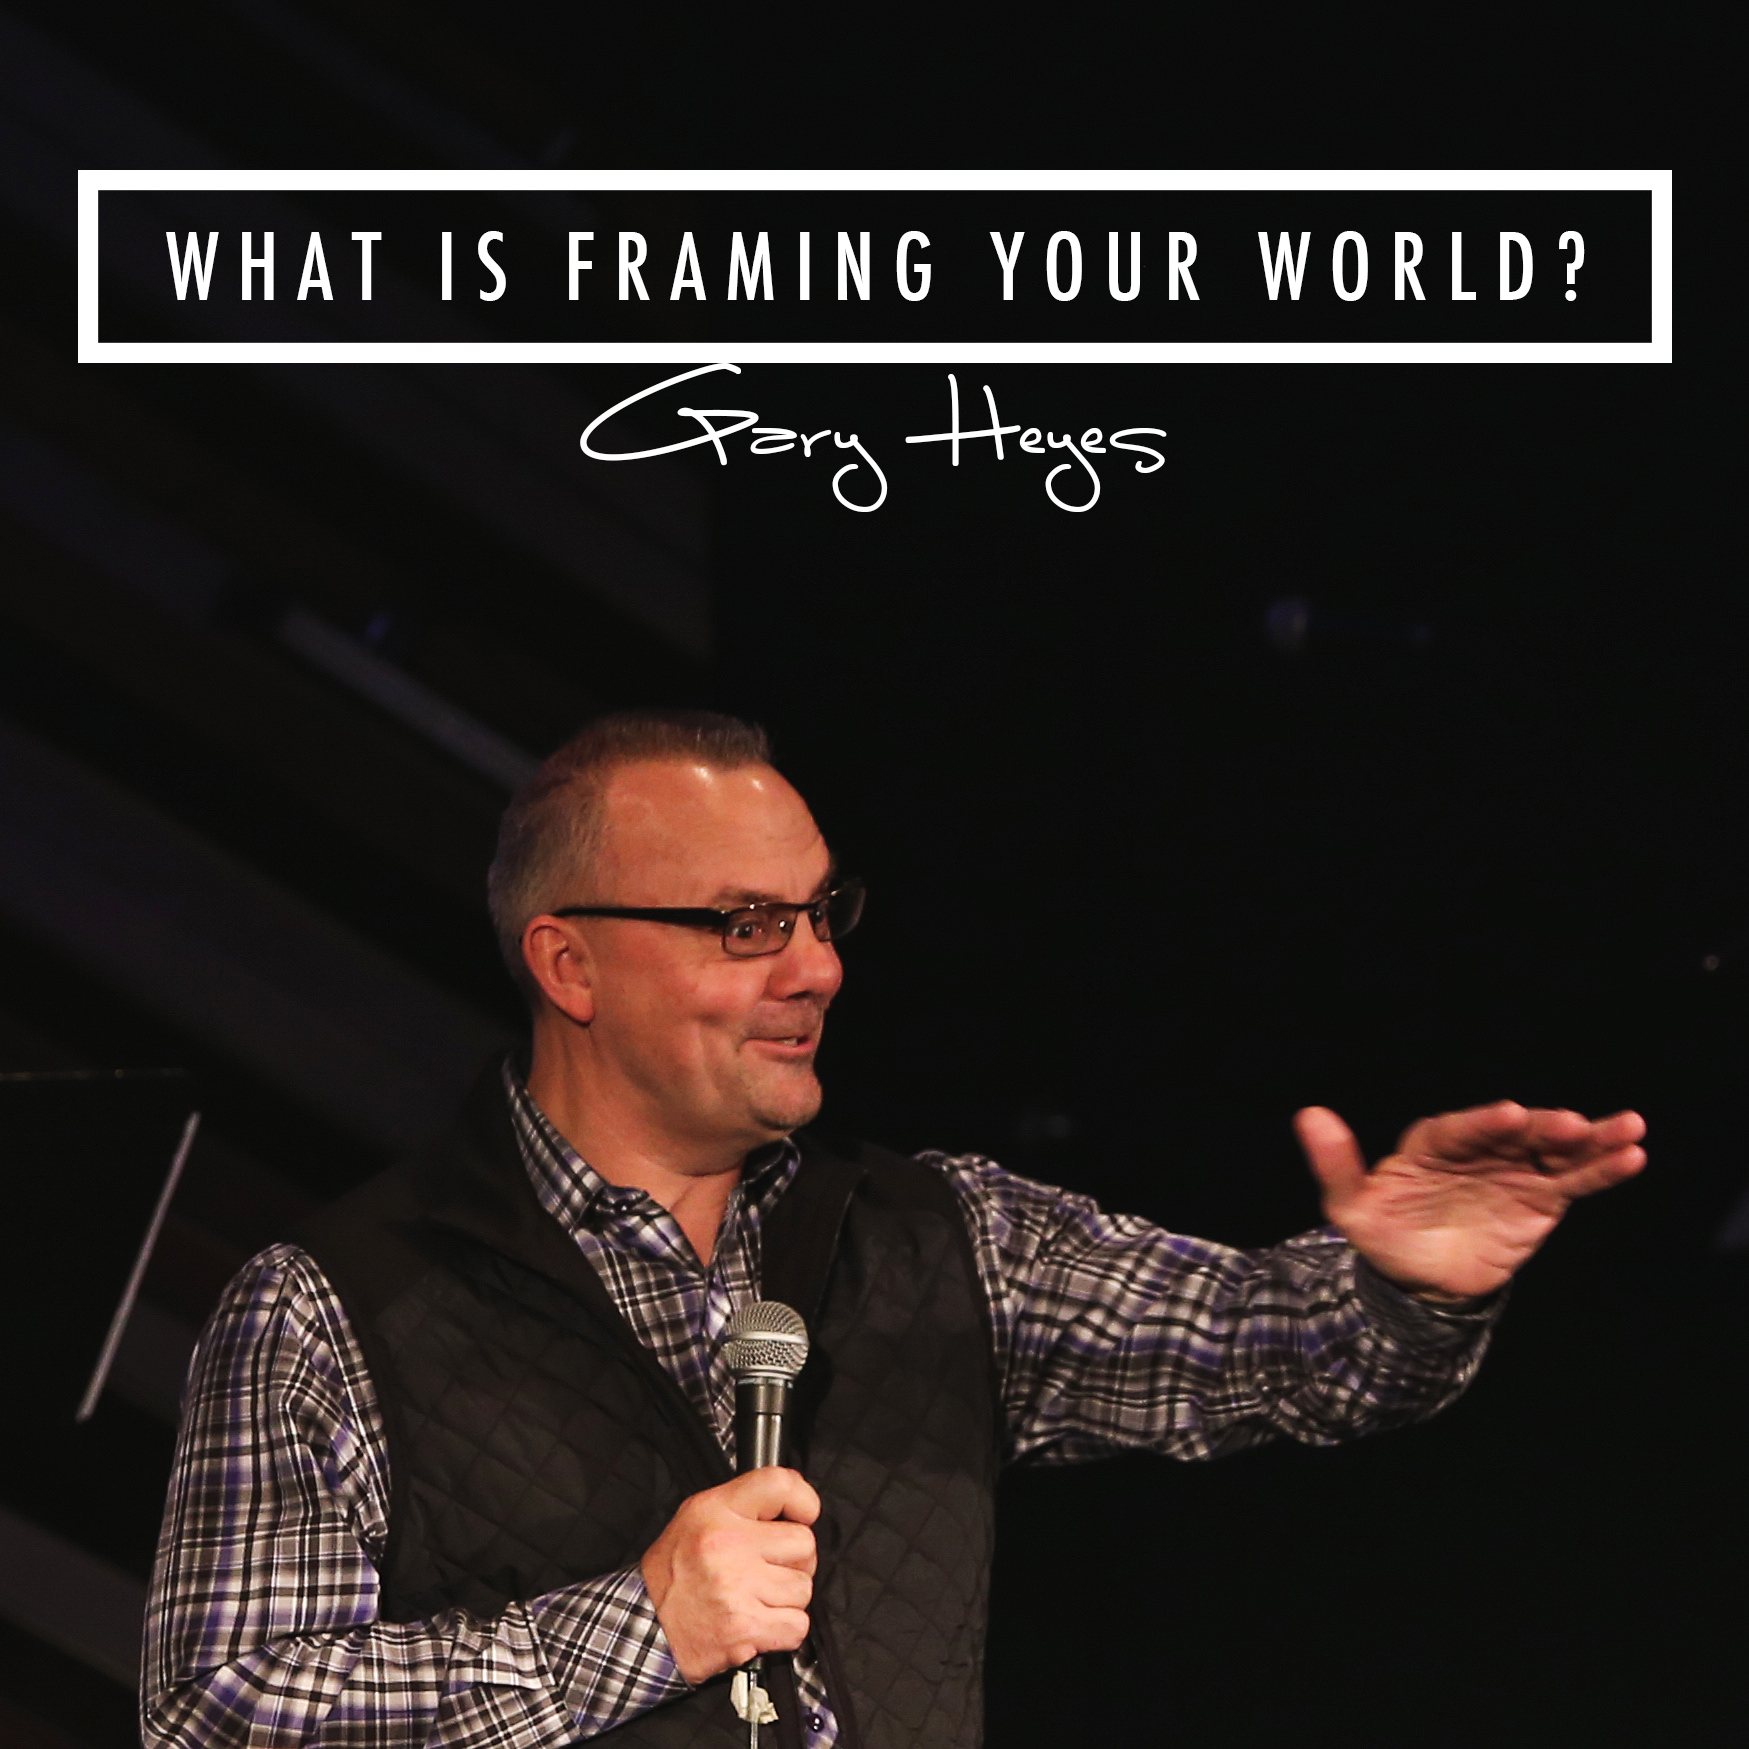 What Is Framing Your World?